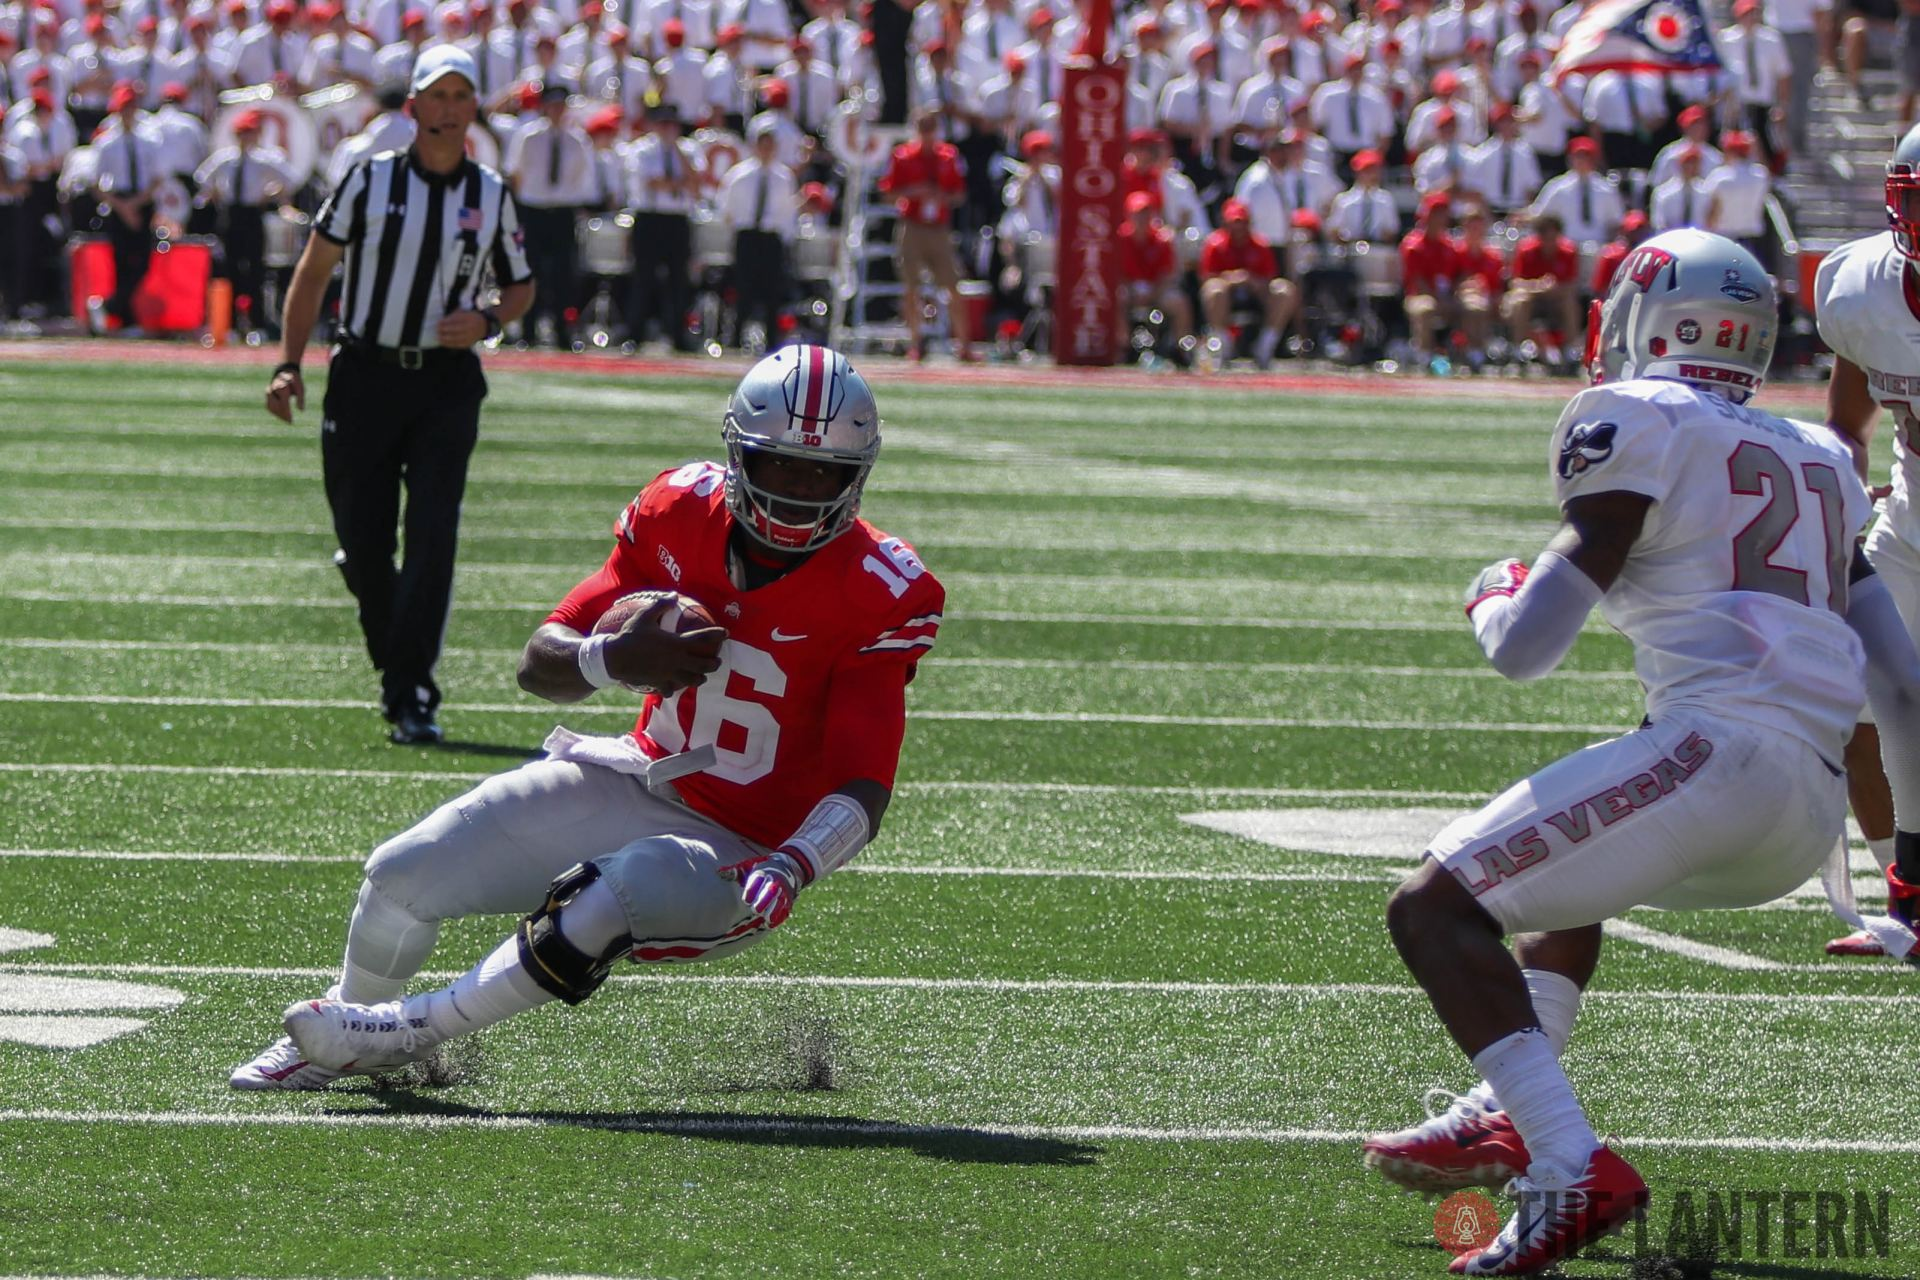 Buckeye Brief: Ohio State's passing game clicks, Rashod Berry makes a statement and more